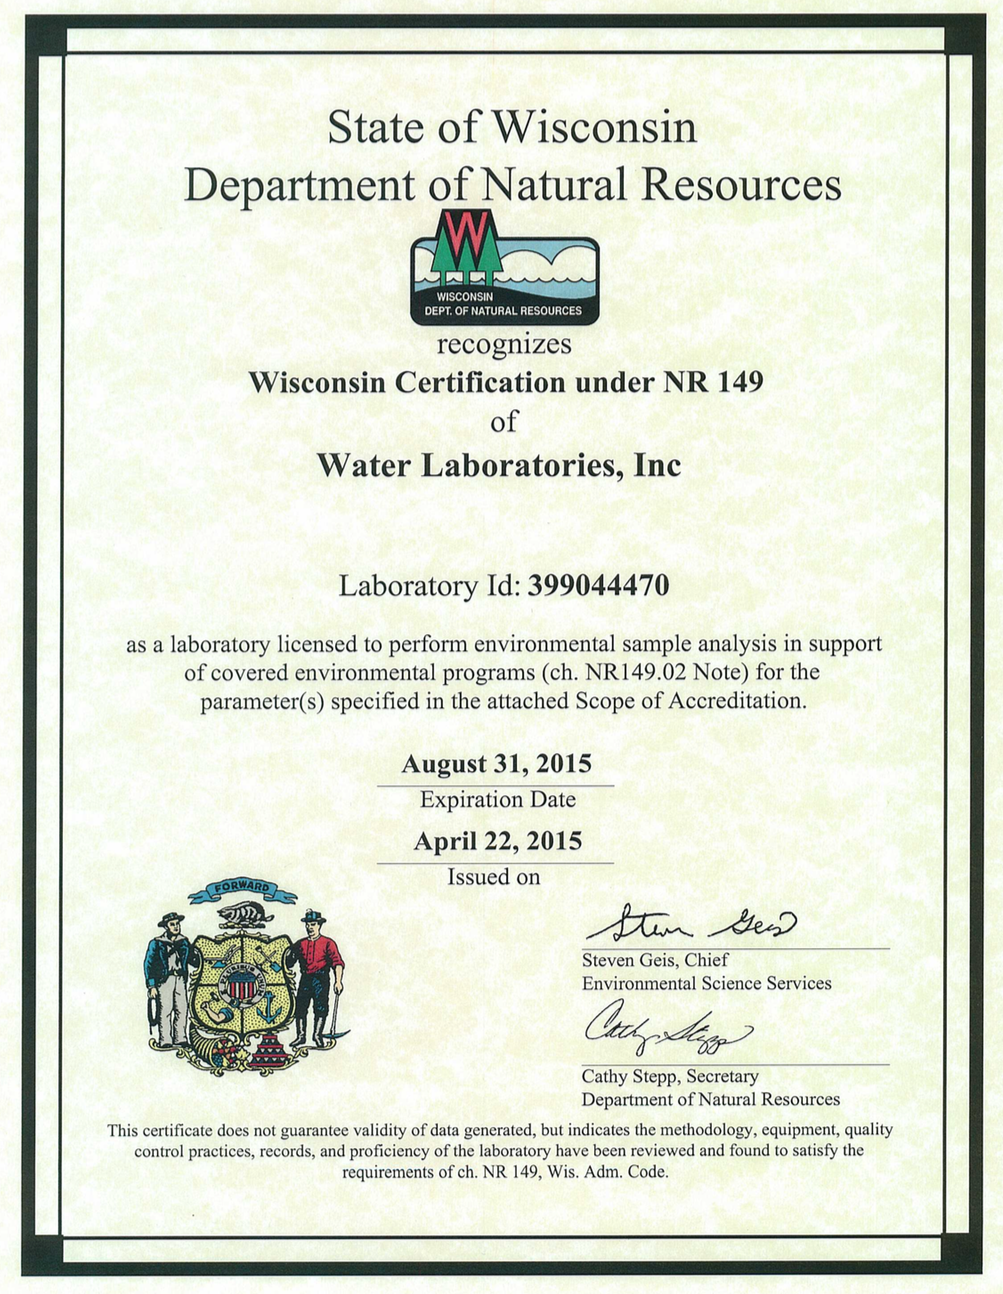 Real-estate related testing | Water Laboratories, Inc.